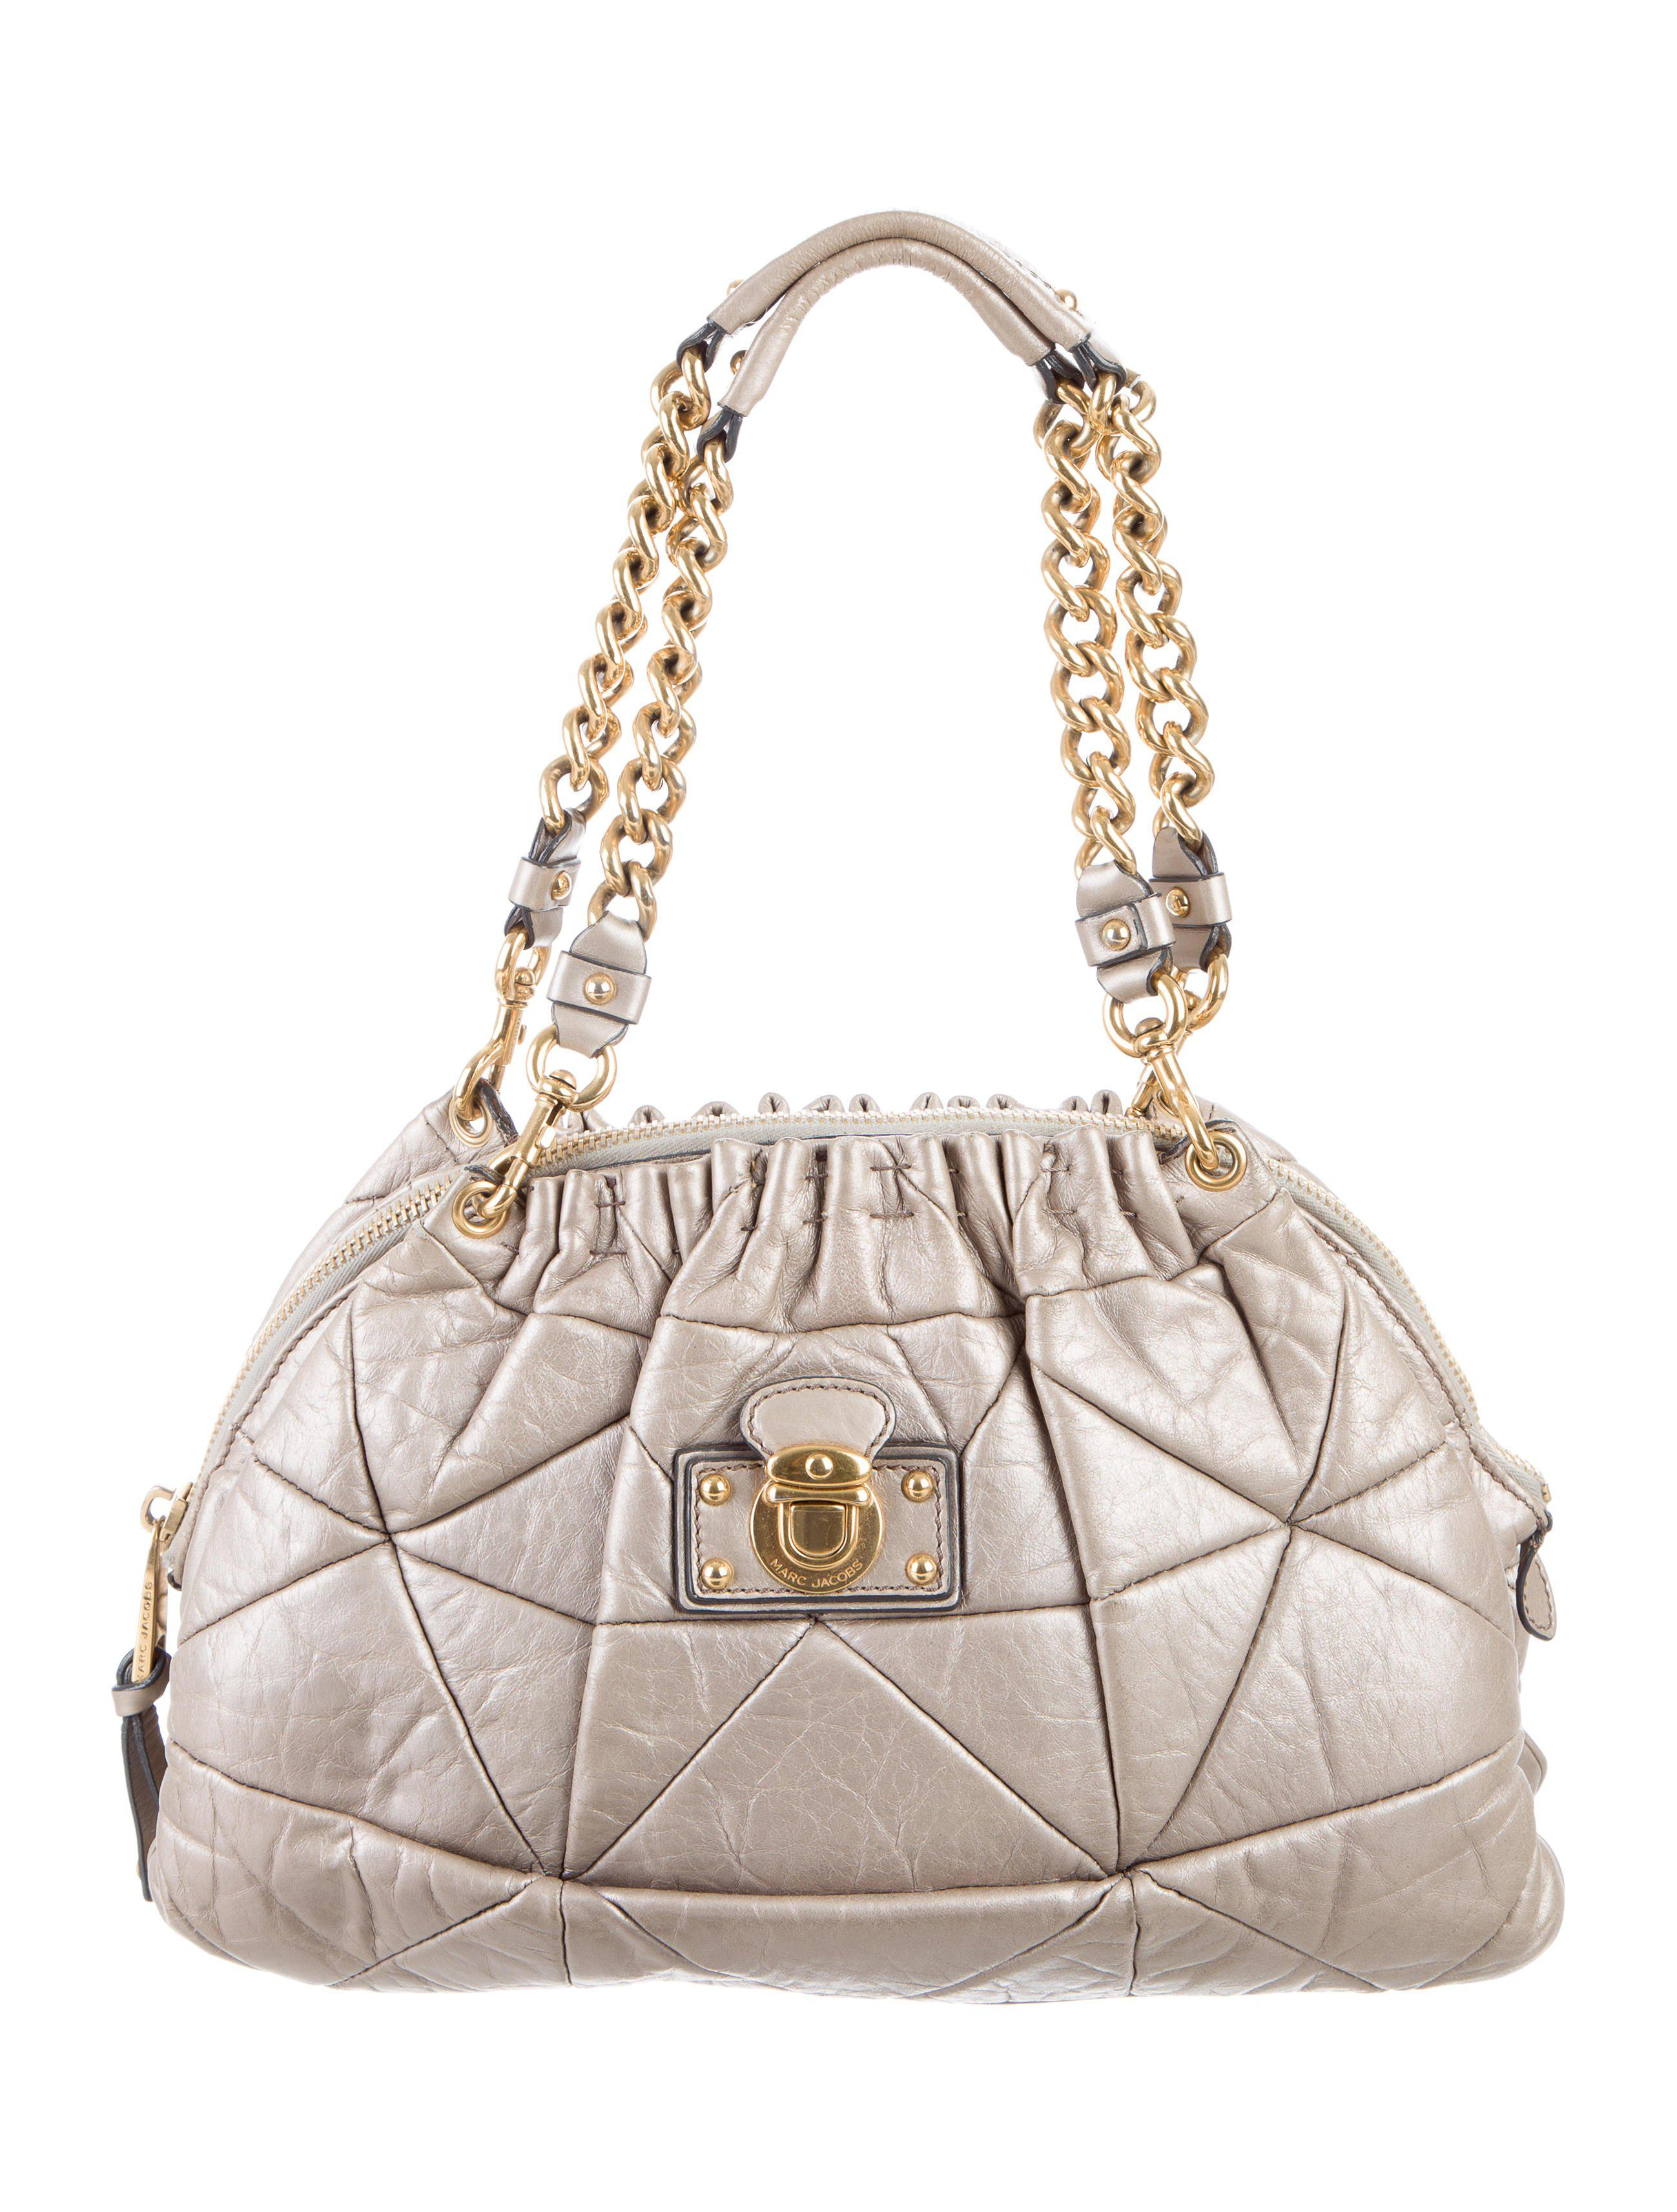 9c072f212a Lyst - Marc Jacobs Quilted Leather Shoulder Bag in Metallic